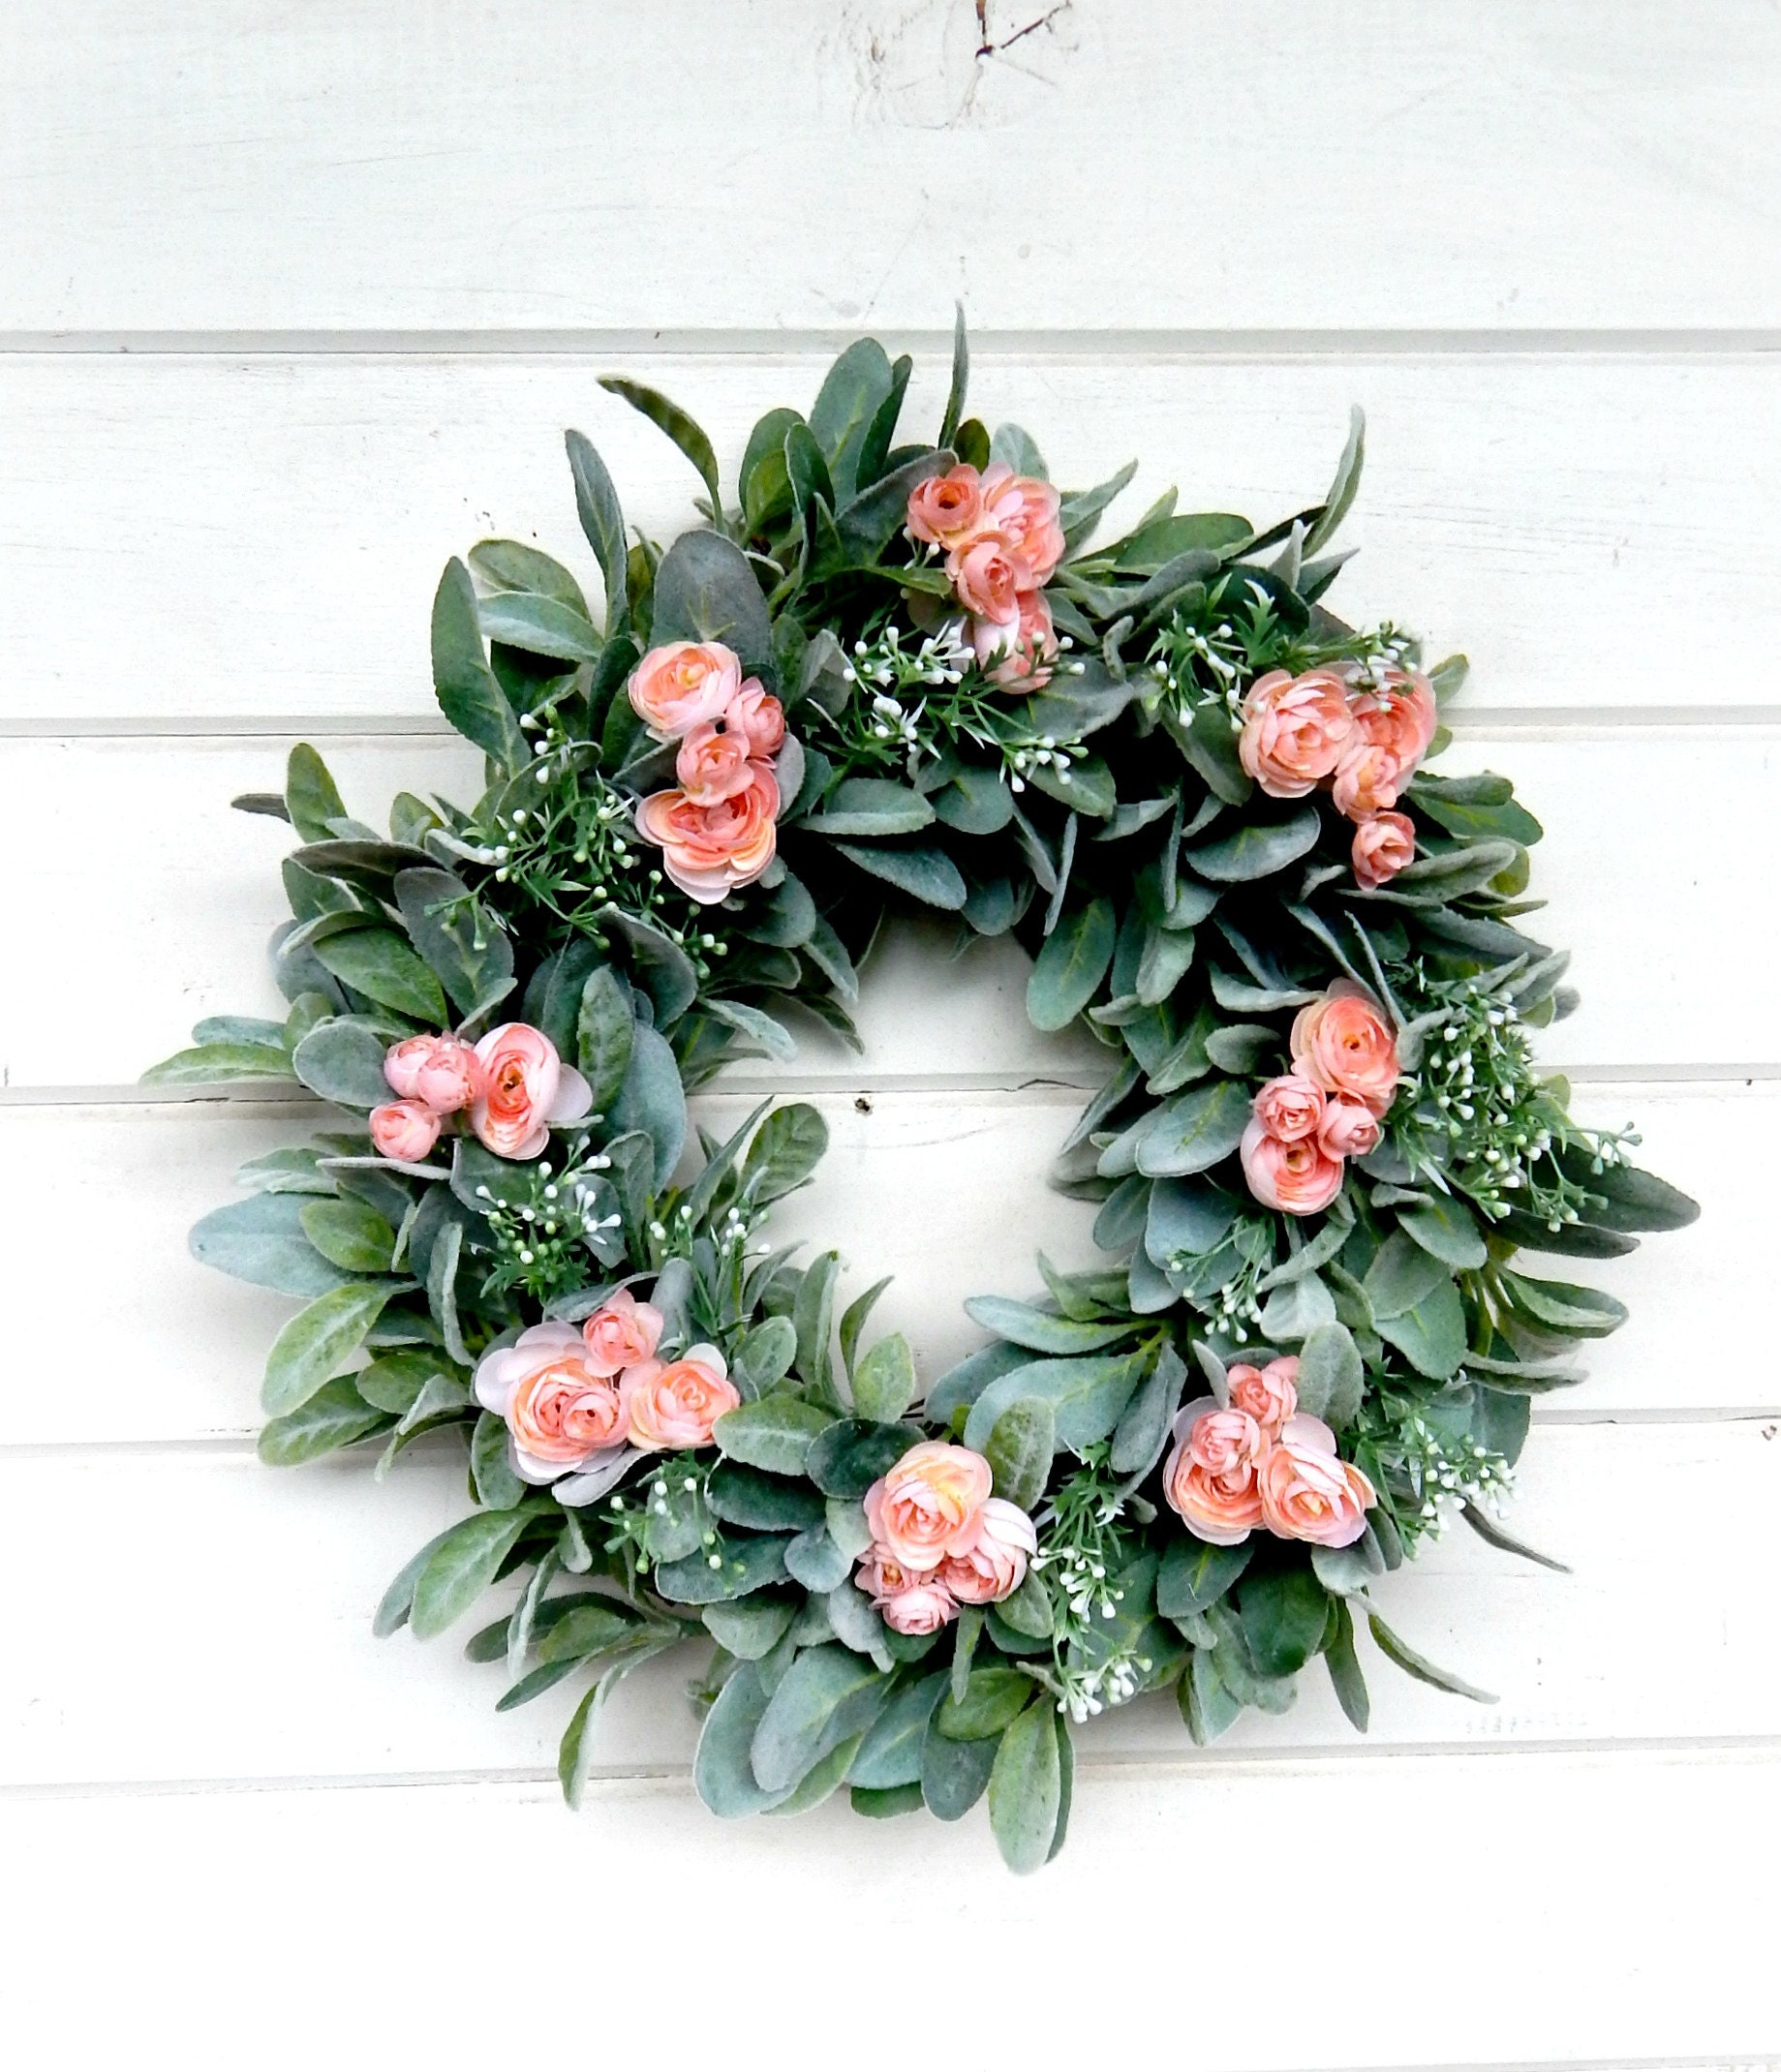 Farmhouse Wreath Lambs Ear Wreath Ranunculus Wreath Fixer Upper Decor Farmhouse Decor Housewarming Gift Greenery Wreath Wreaths Home Decor